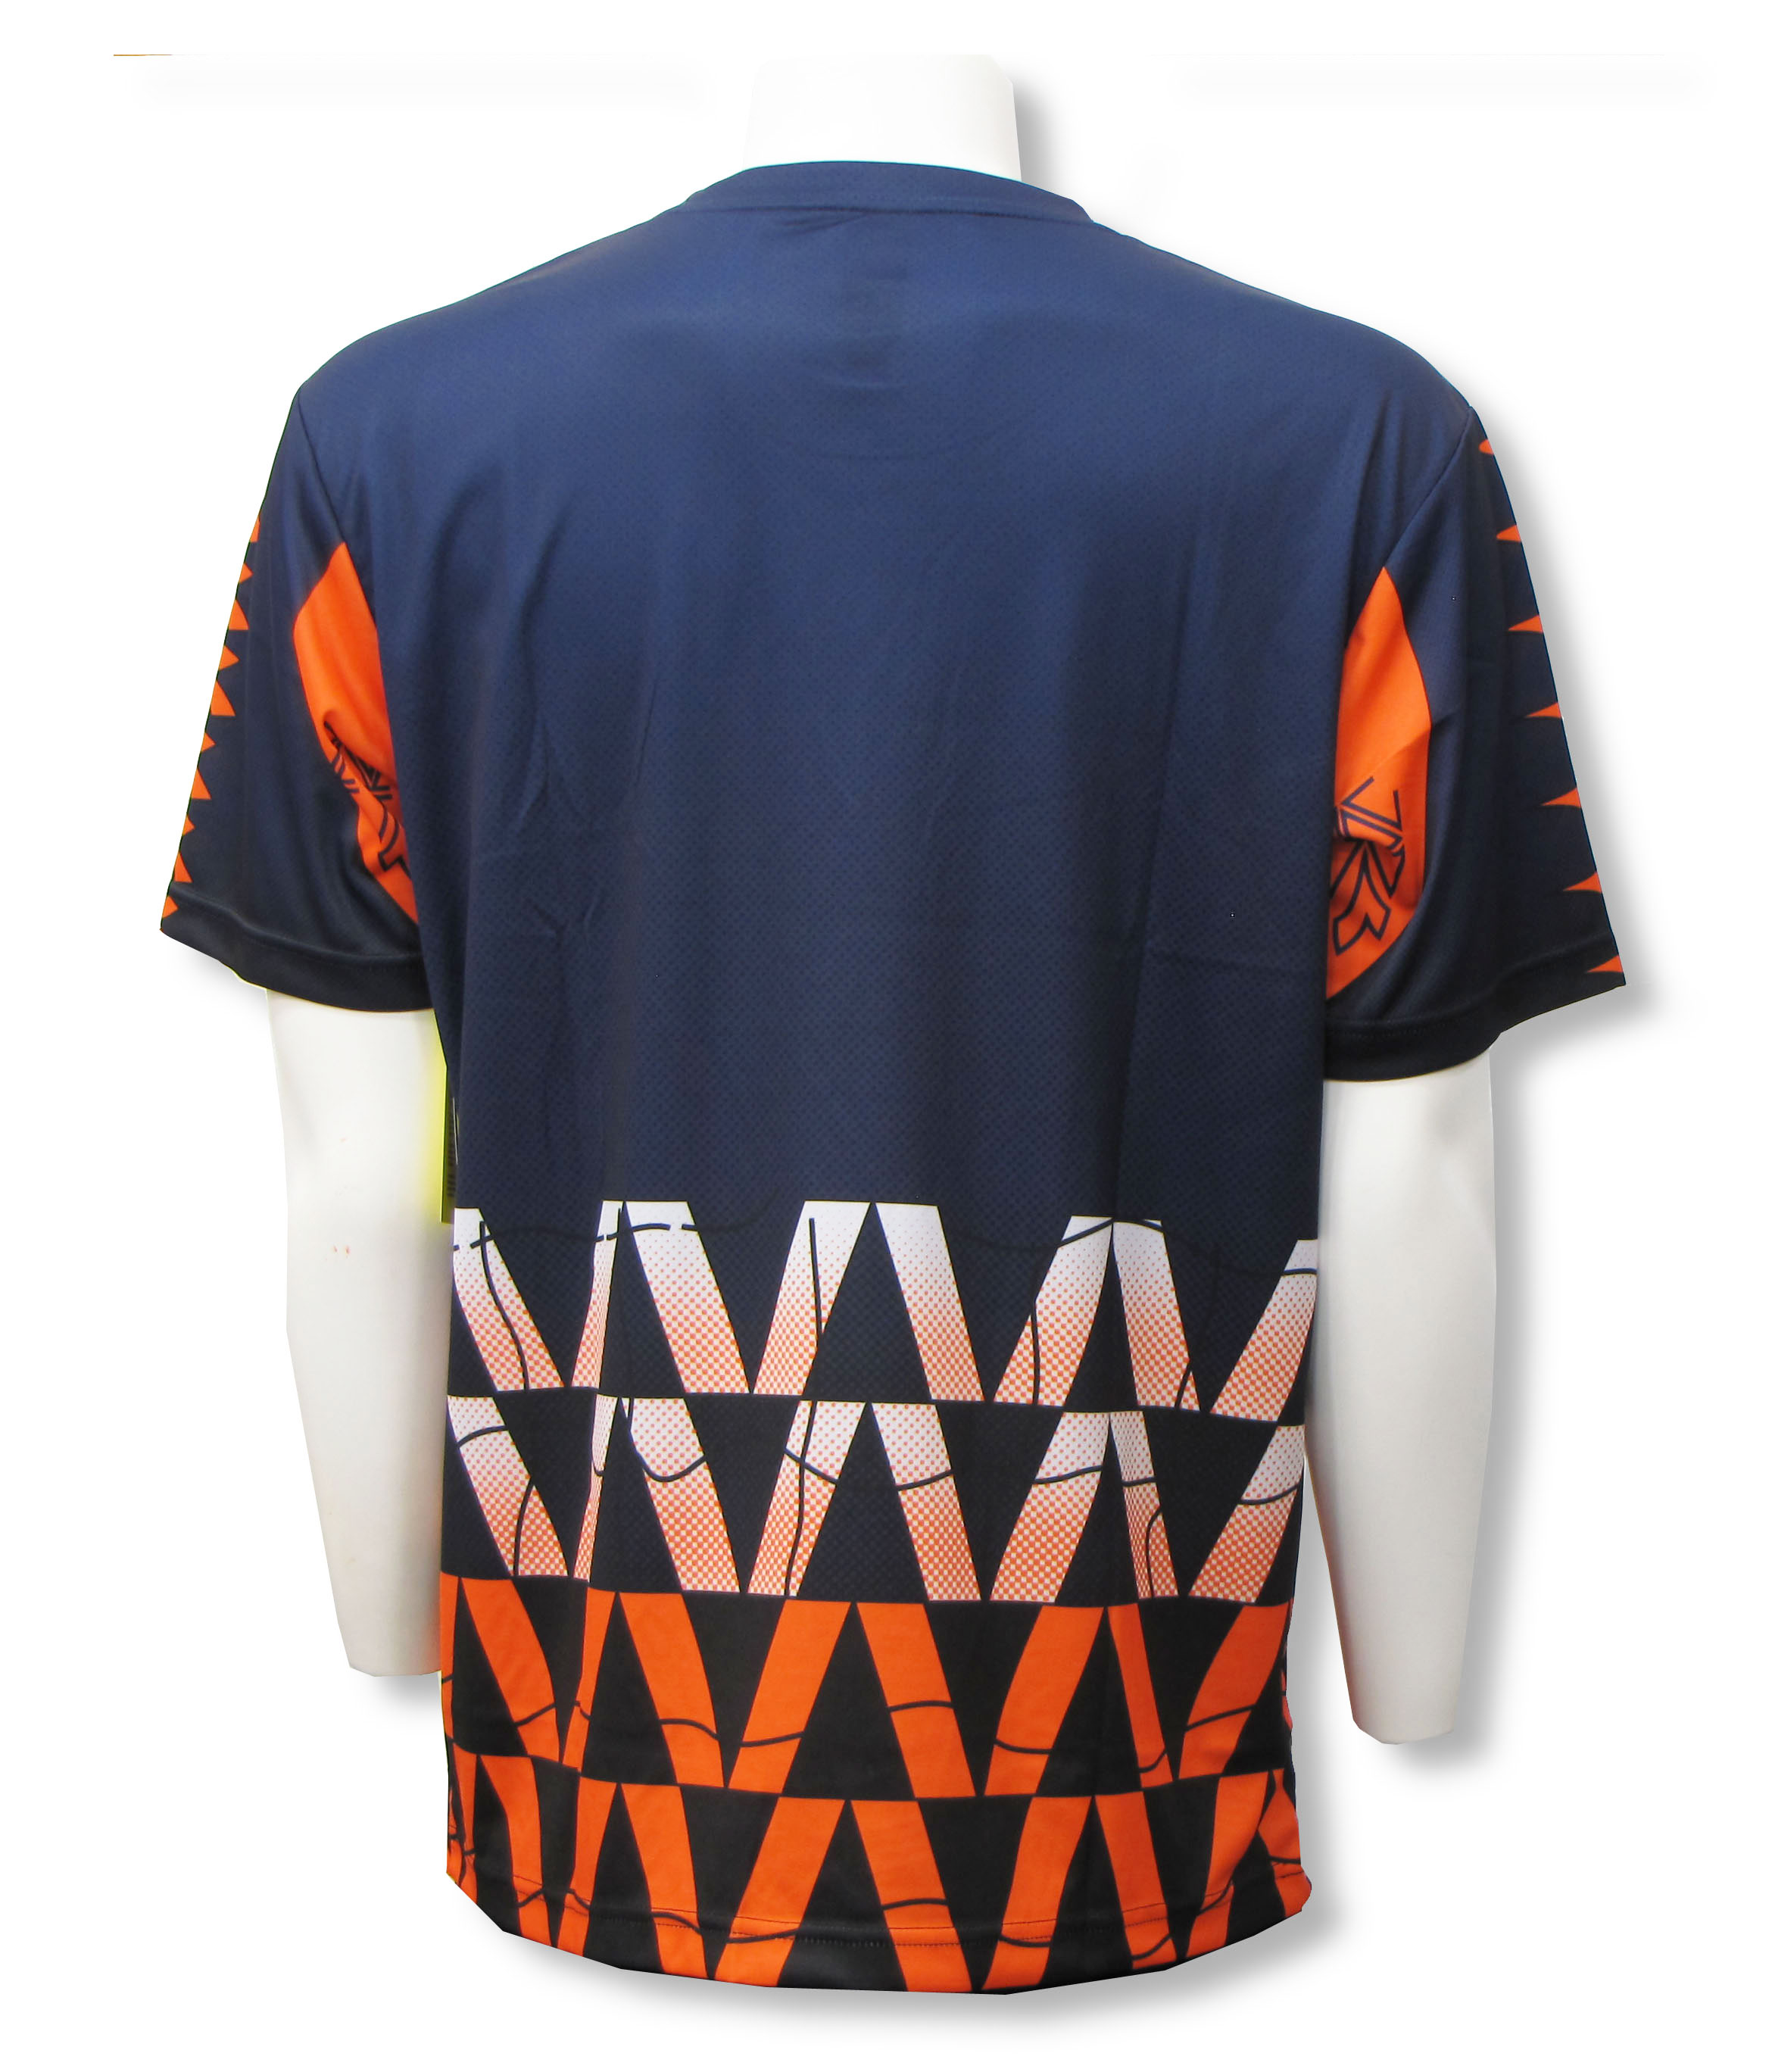 Diadora Fresco short sleeve keeper jersey, back, in navy and orange by Code Four Athletics